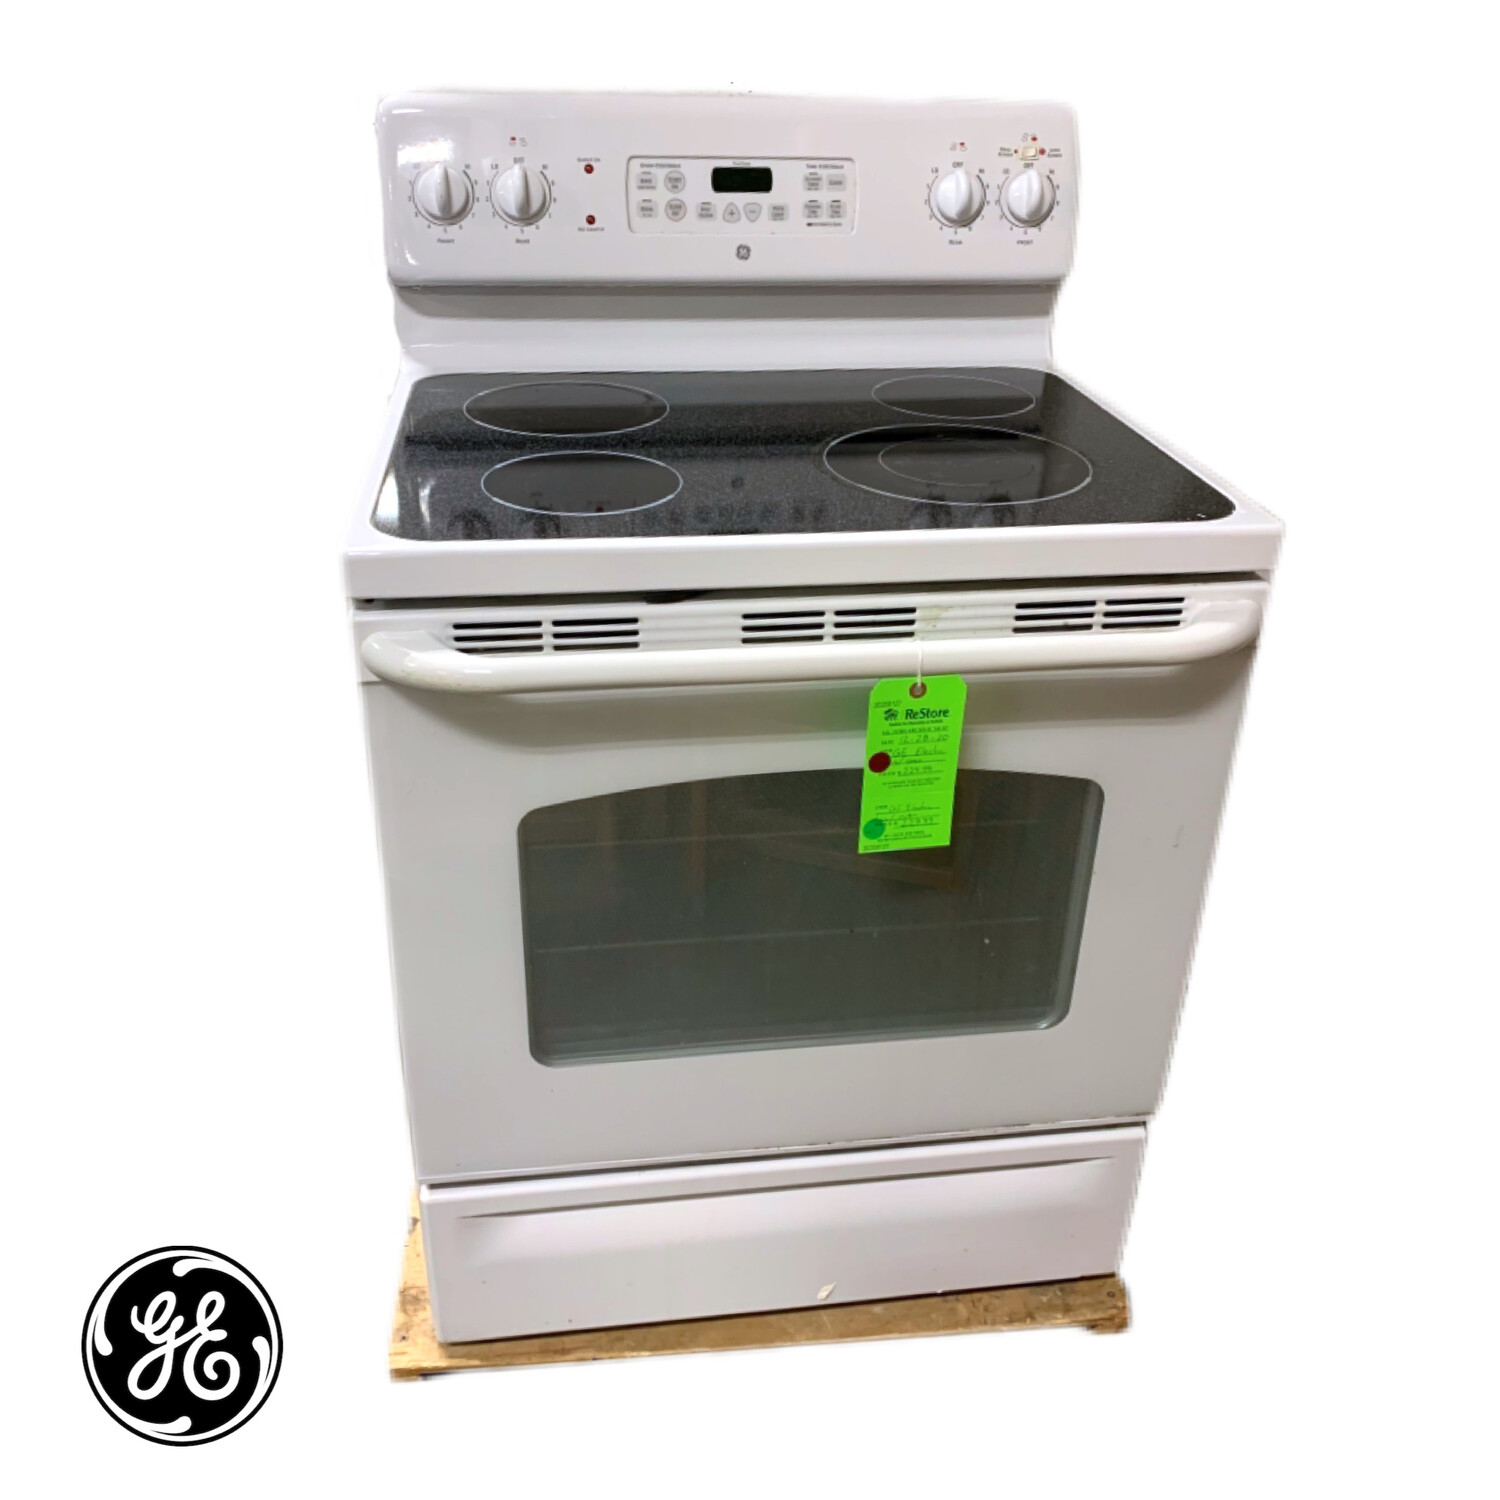 GE Electric Stove/ Oven